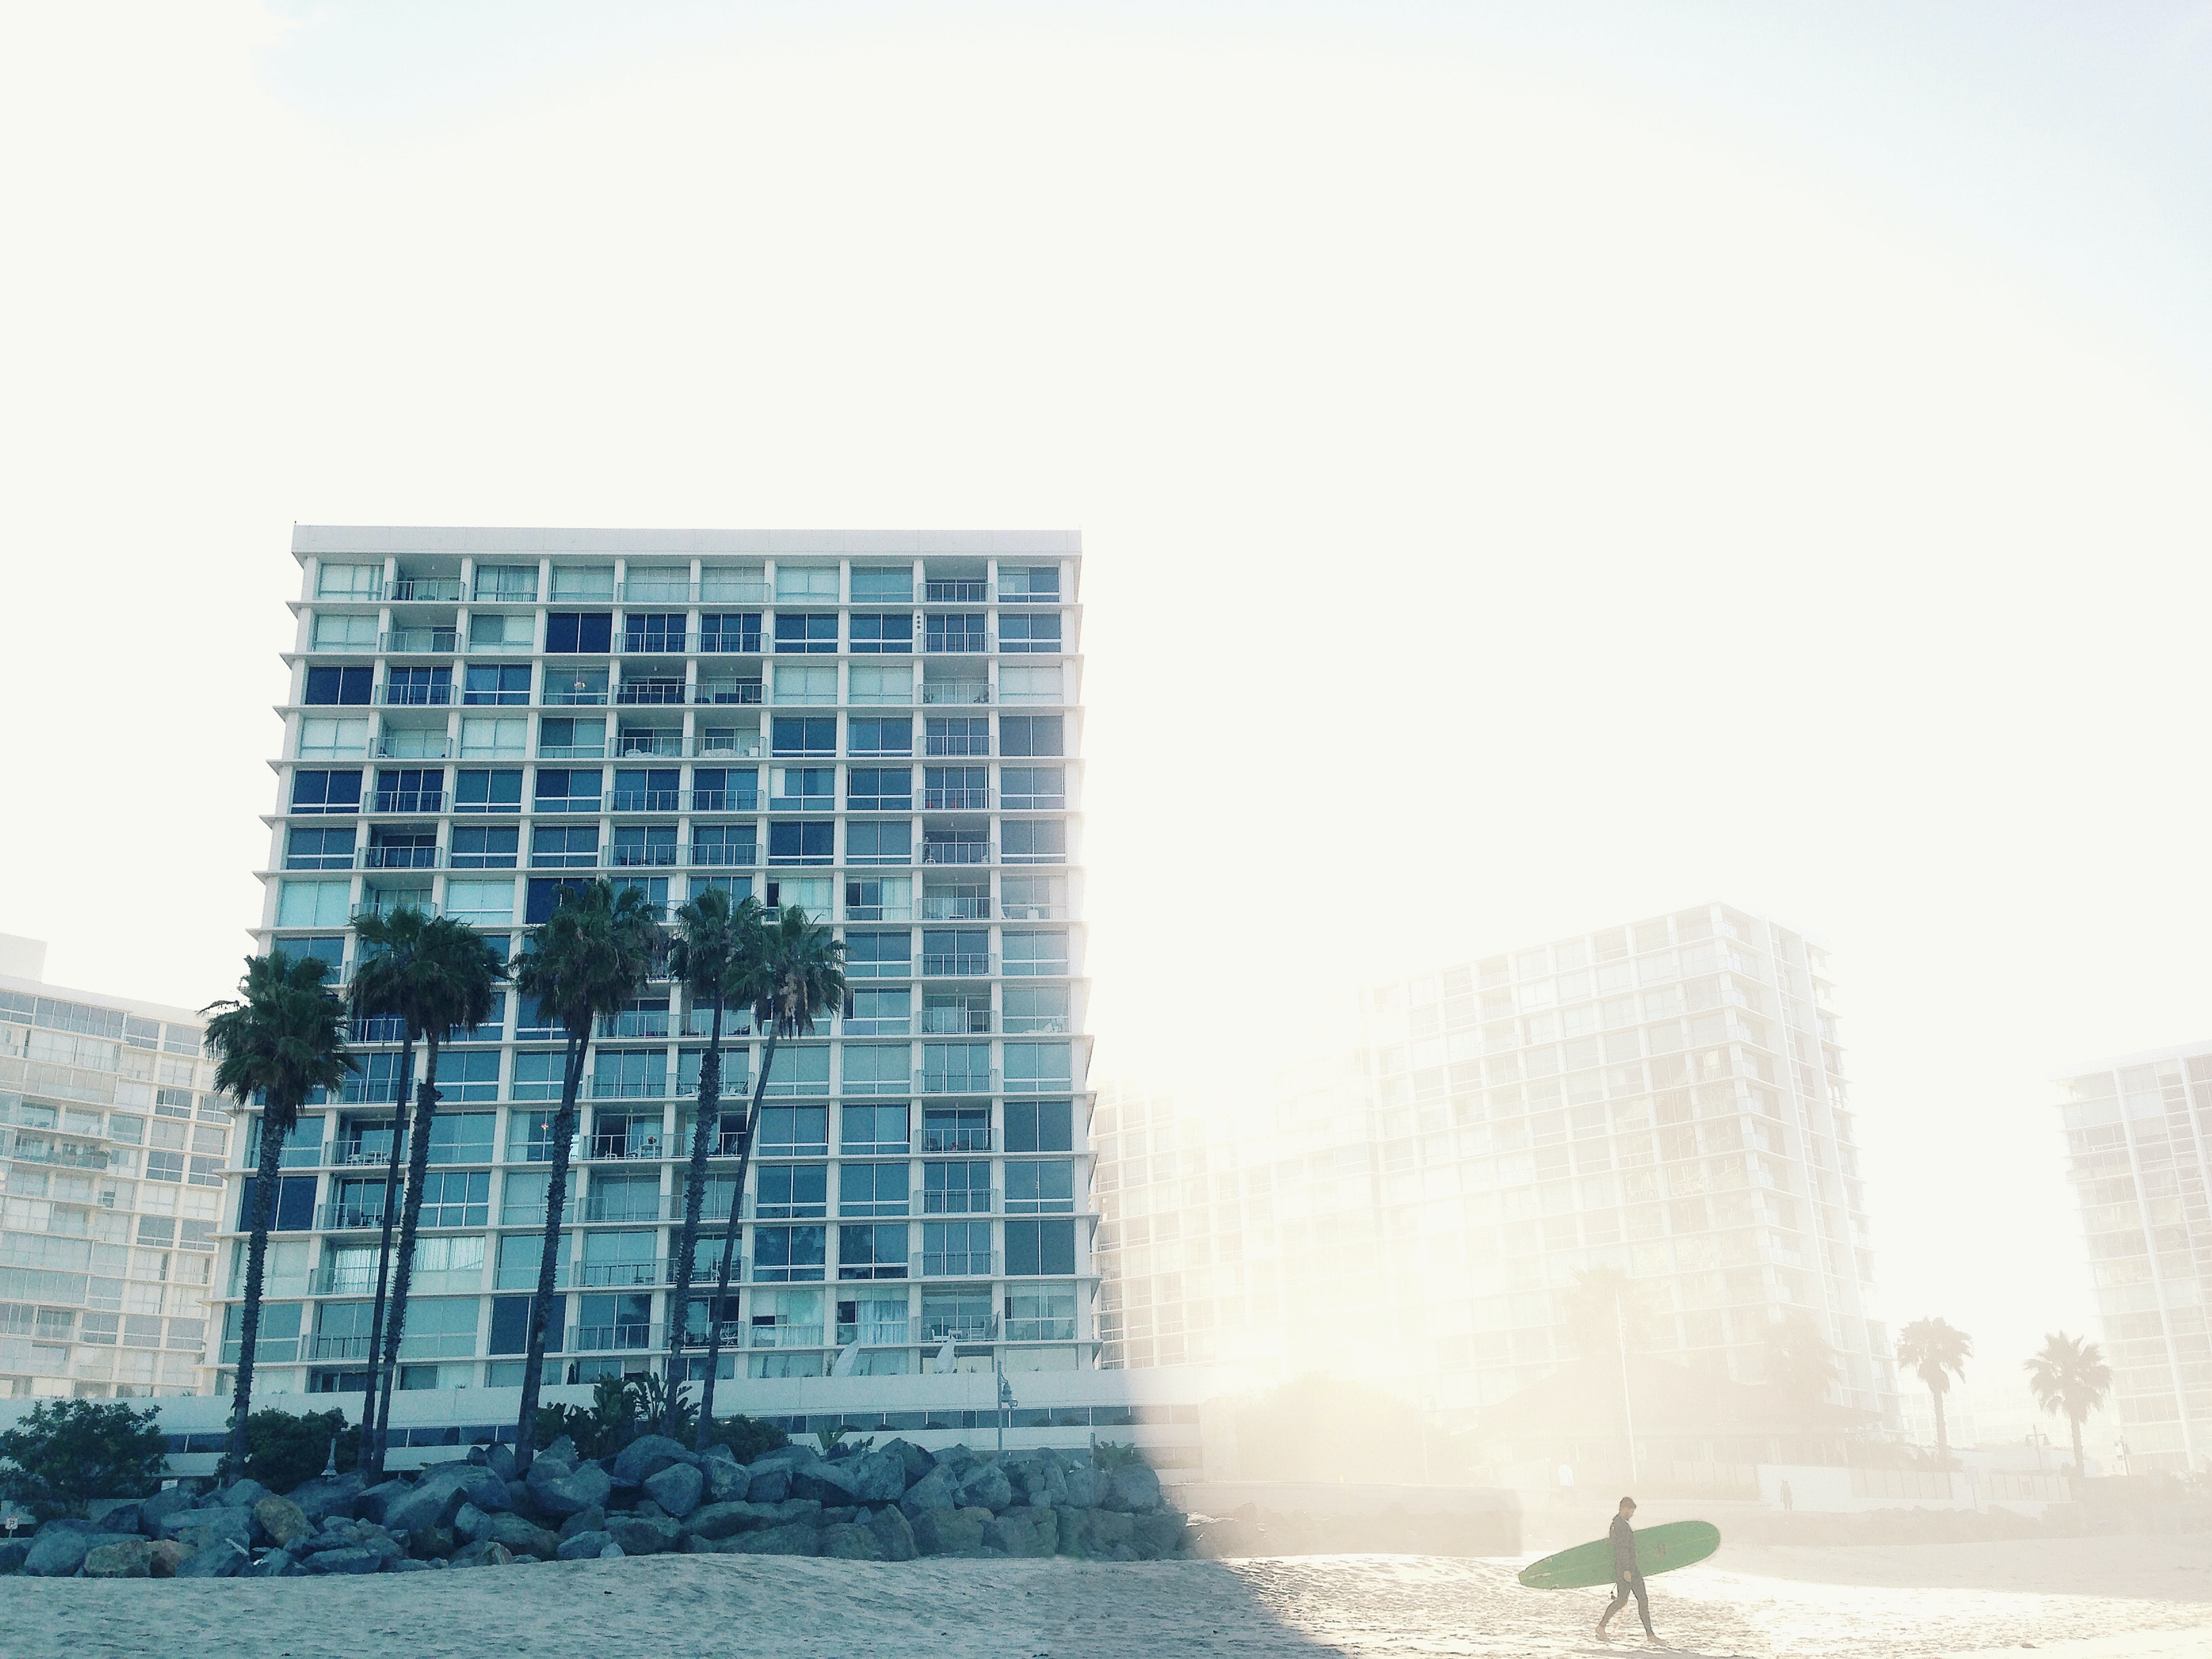 View of highrise beach apartments at Coronado featuring the foggy sky and palm tree